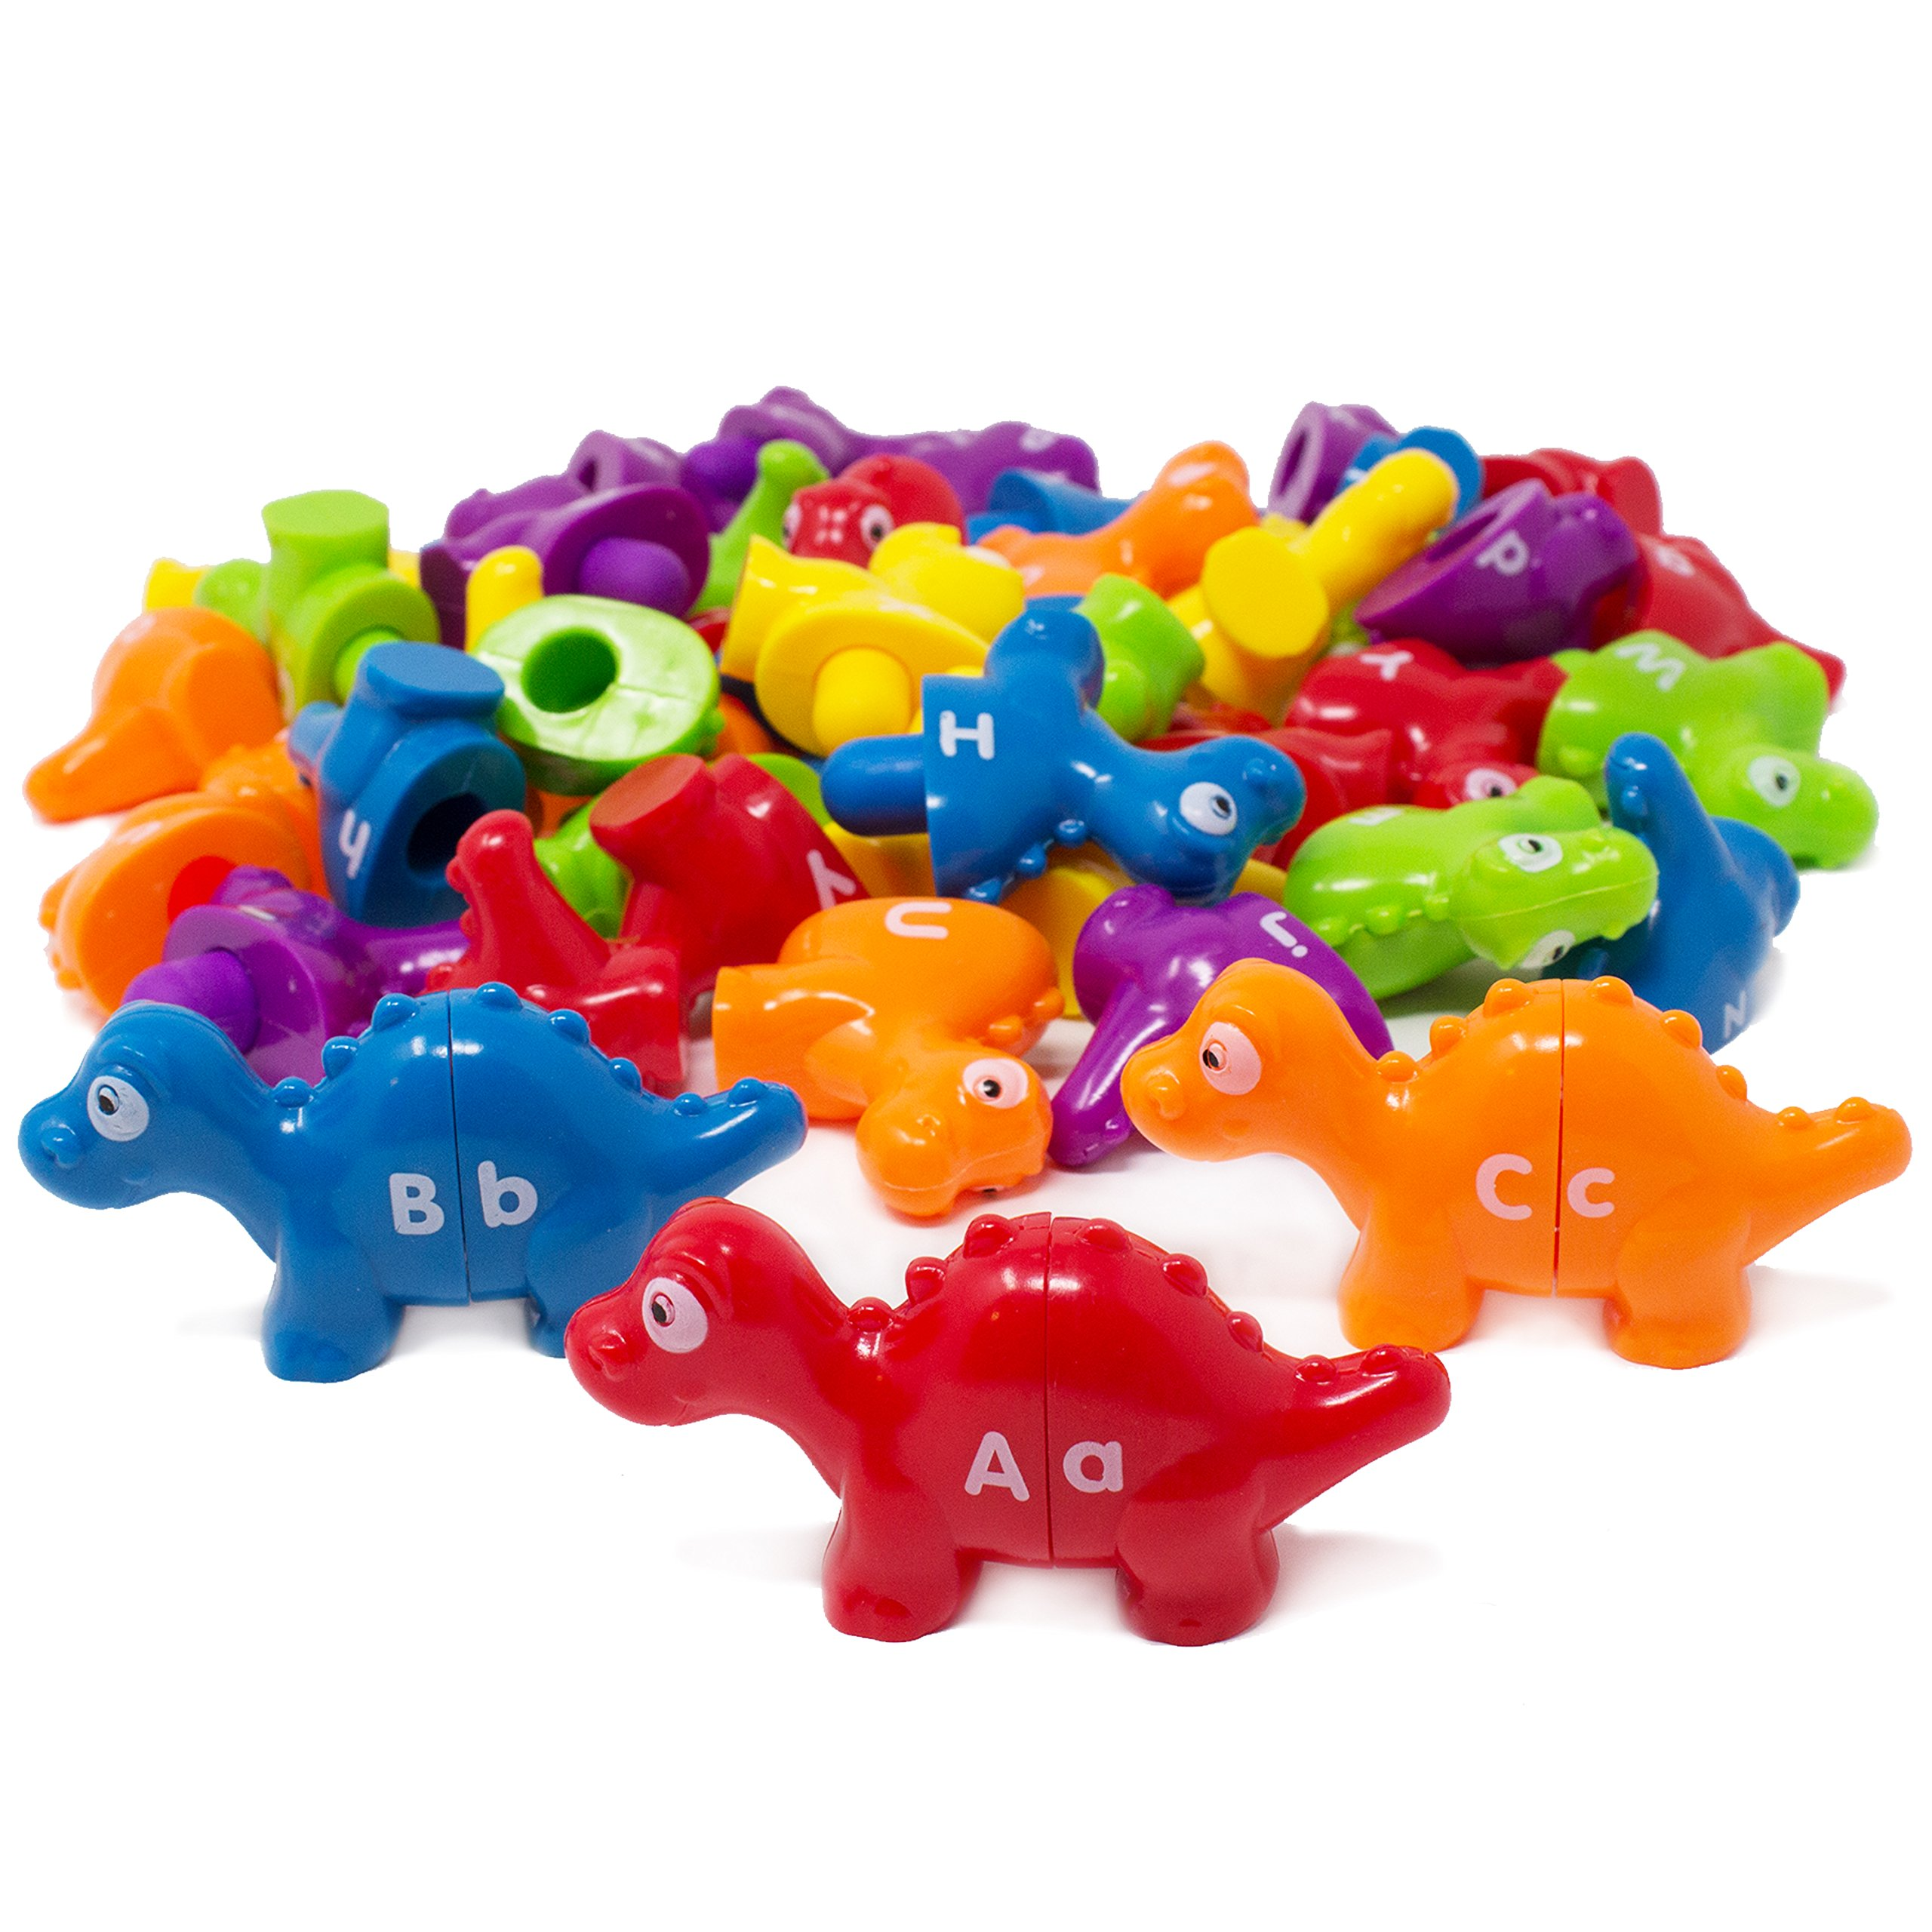 Boley 52 PC Alphabet Dinosaurs - Educational Dinosaur Alphabet Matching Toy Game - Great Learning Tool for Toddlers